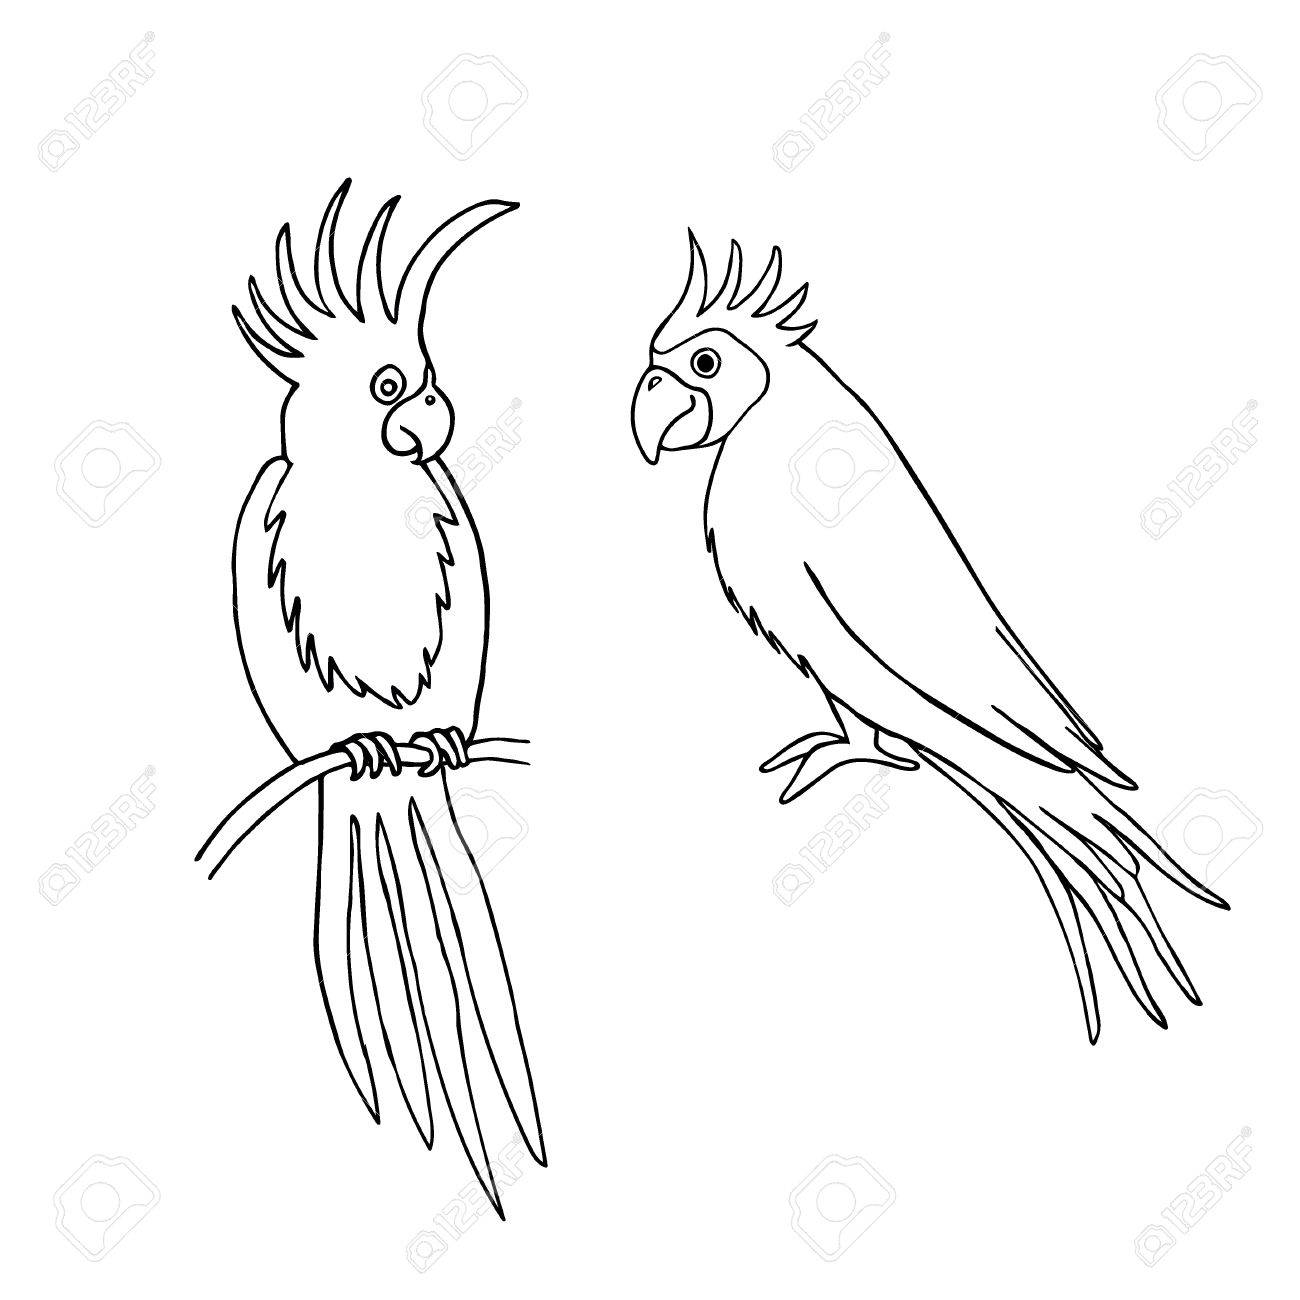 1300x1300 Vector Illustration Of Parrot Outline Based On Hand Draw Sketch